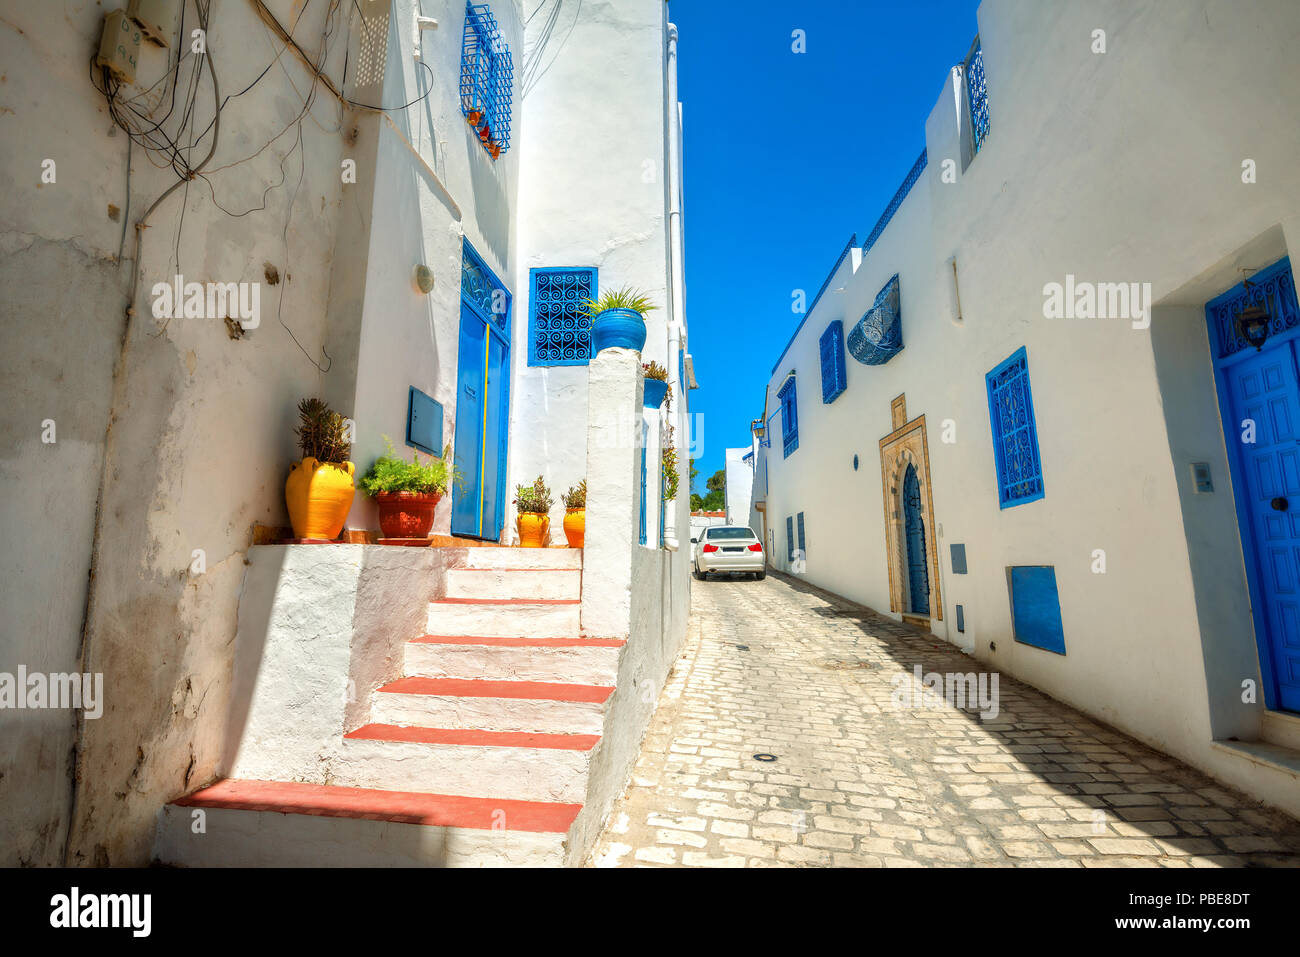 Narrow street in white blue town Sidi Bou Said. Tunisia, North Africa - Stock Image